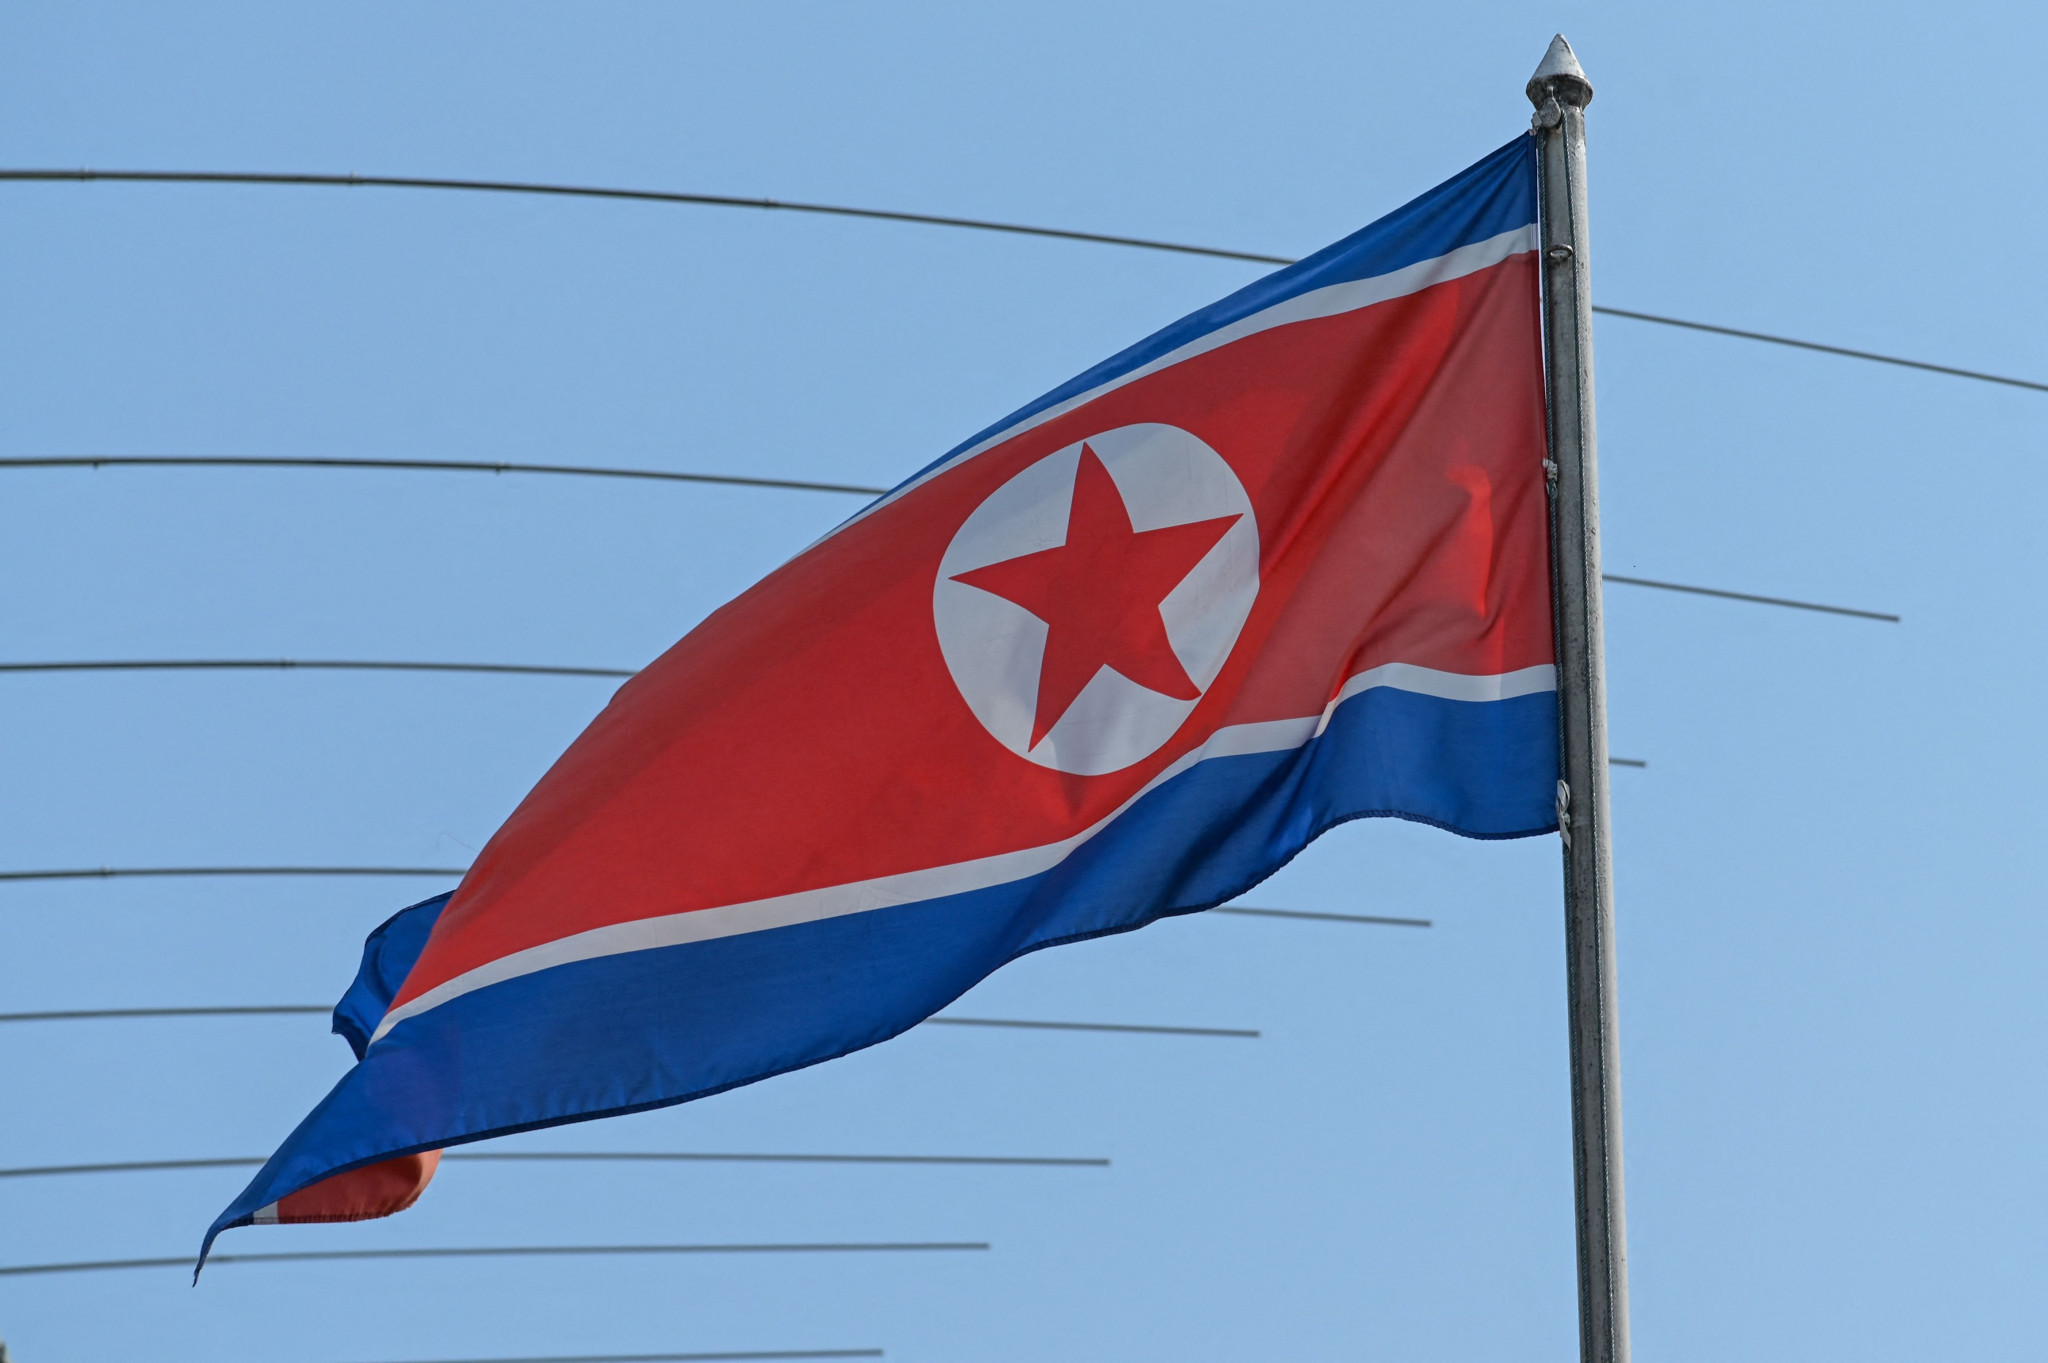 North Korea withdraws from Tokyo 2020 over COVID-19 fears